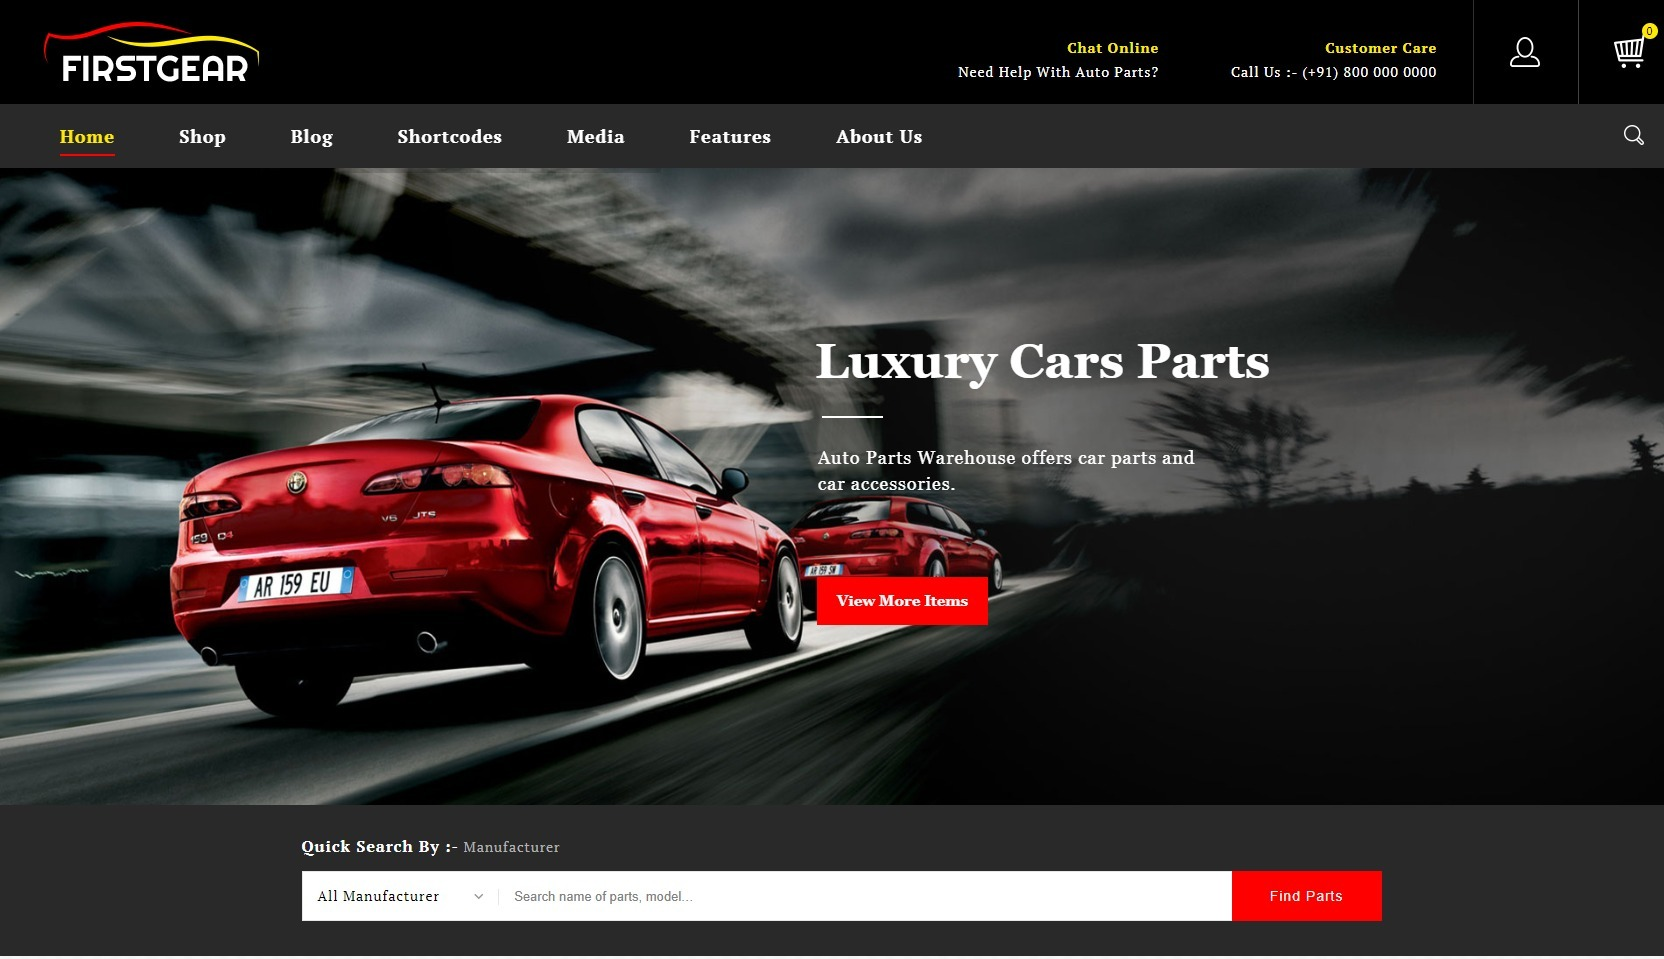 FirstGear WordPress Theme for Auto Parts Sales